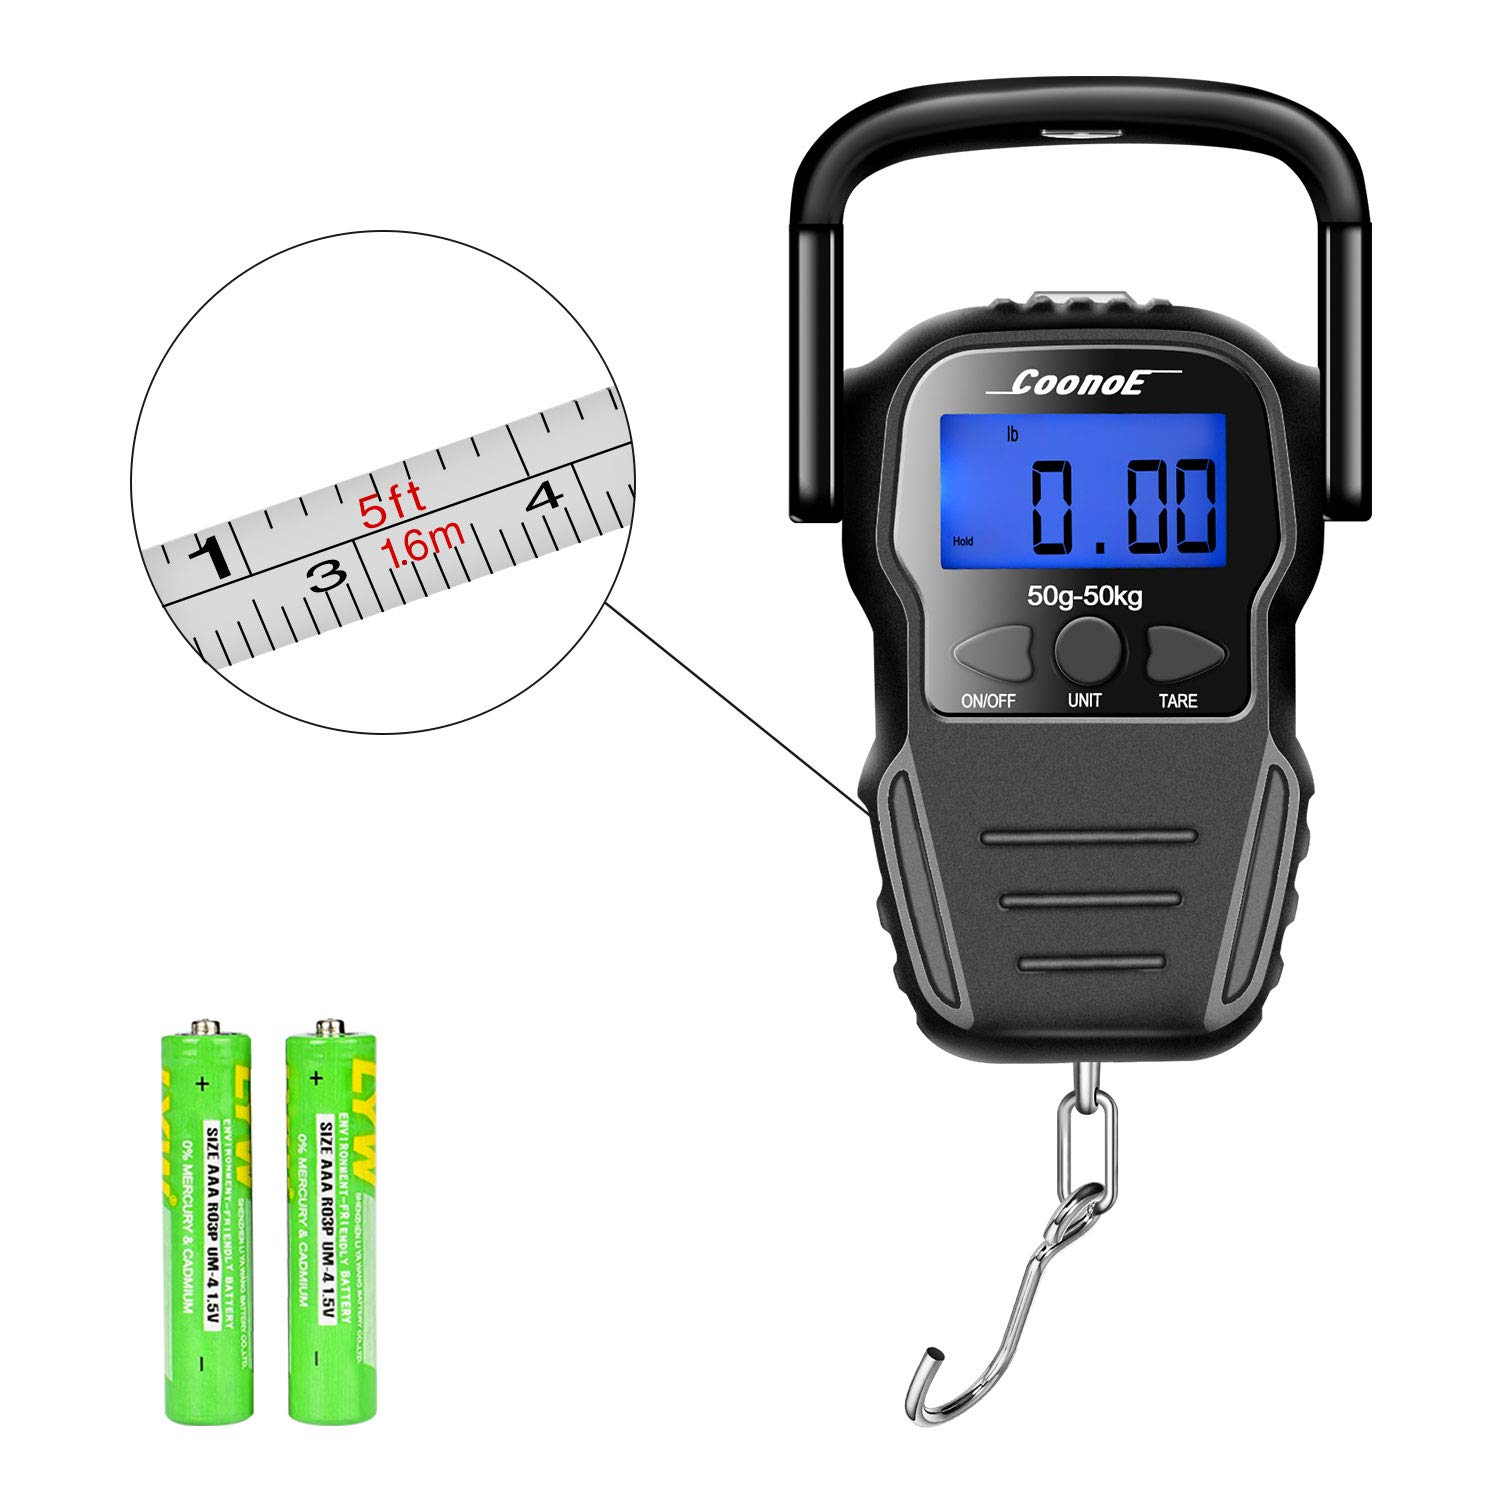 COONOE Digital Fish Scale 110lb/50kg, Portable Luggage Weight Scale, Electronic Balance Digital Hanging Hook Scale with Measuring Tape, 2 AAA Batteries Included by COONOE